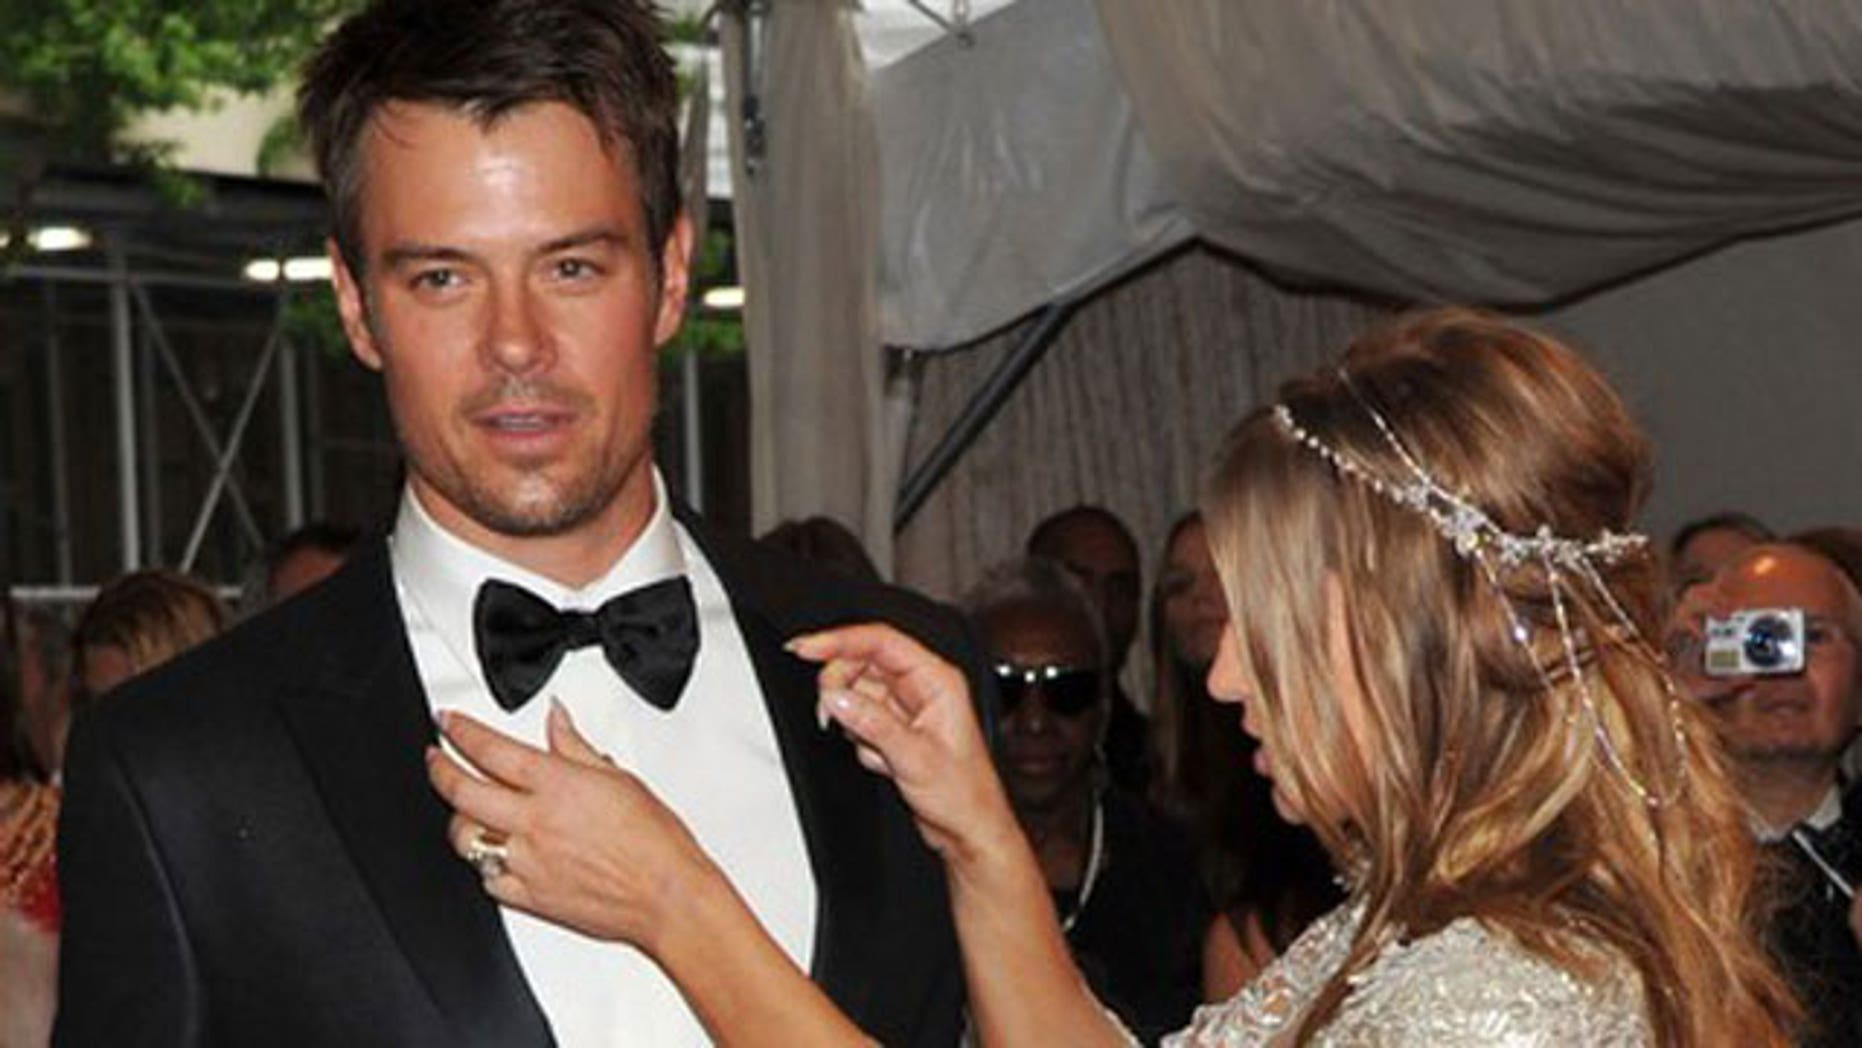 Josh Duhamel (shown here with wife Fergie) urged his fans via twitter to raise awareness of his flooded hometown of Minot, North Dakota.